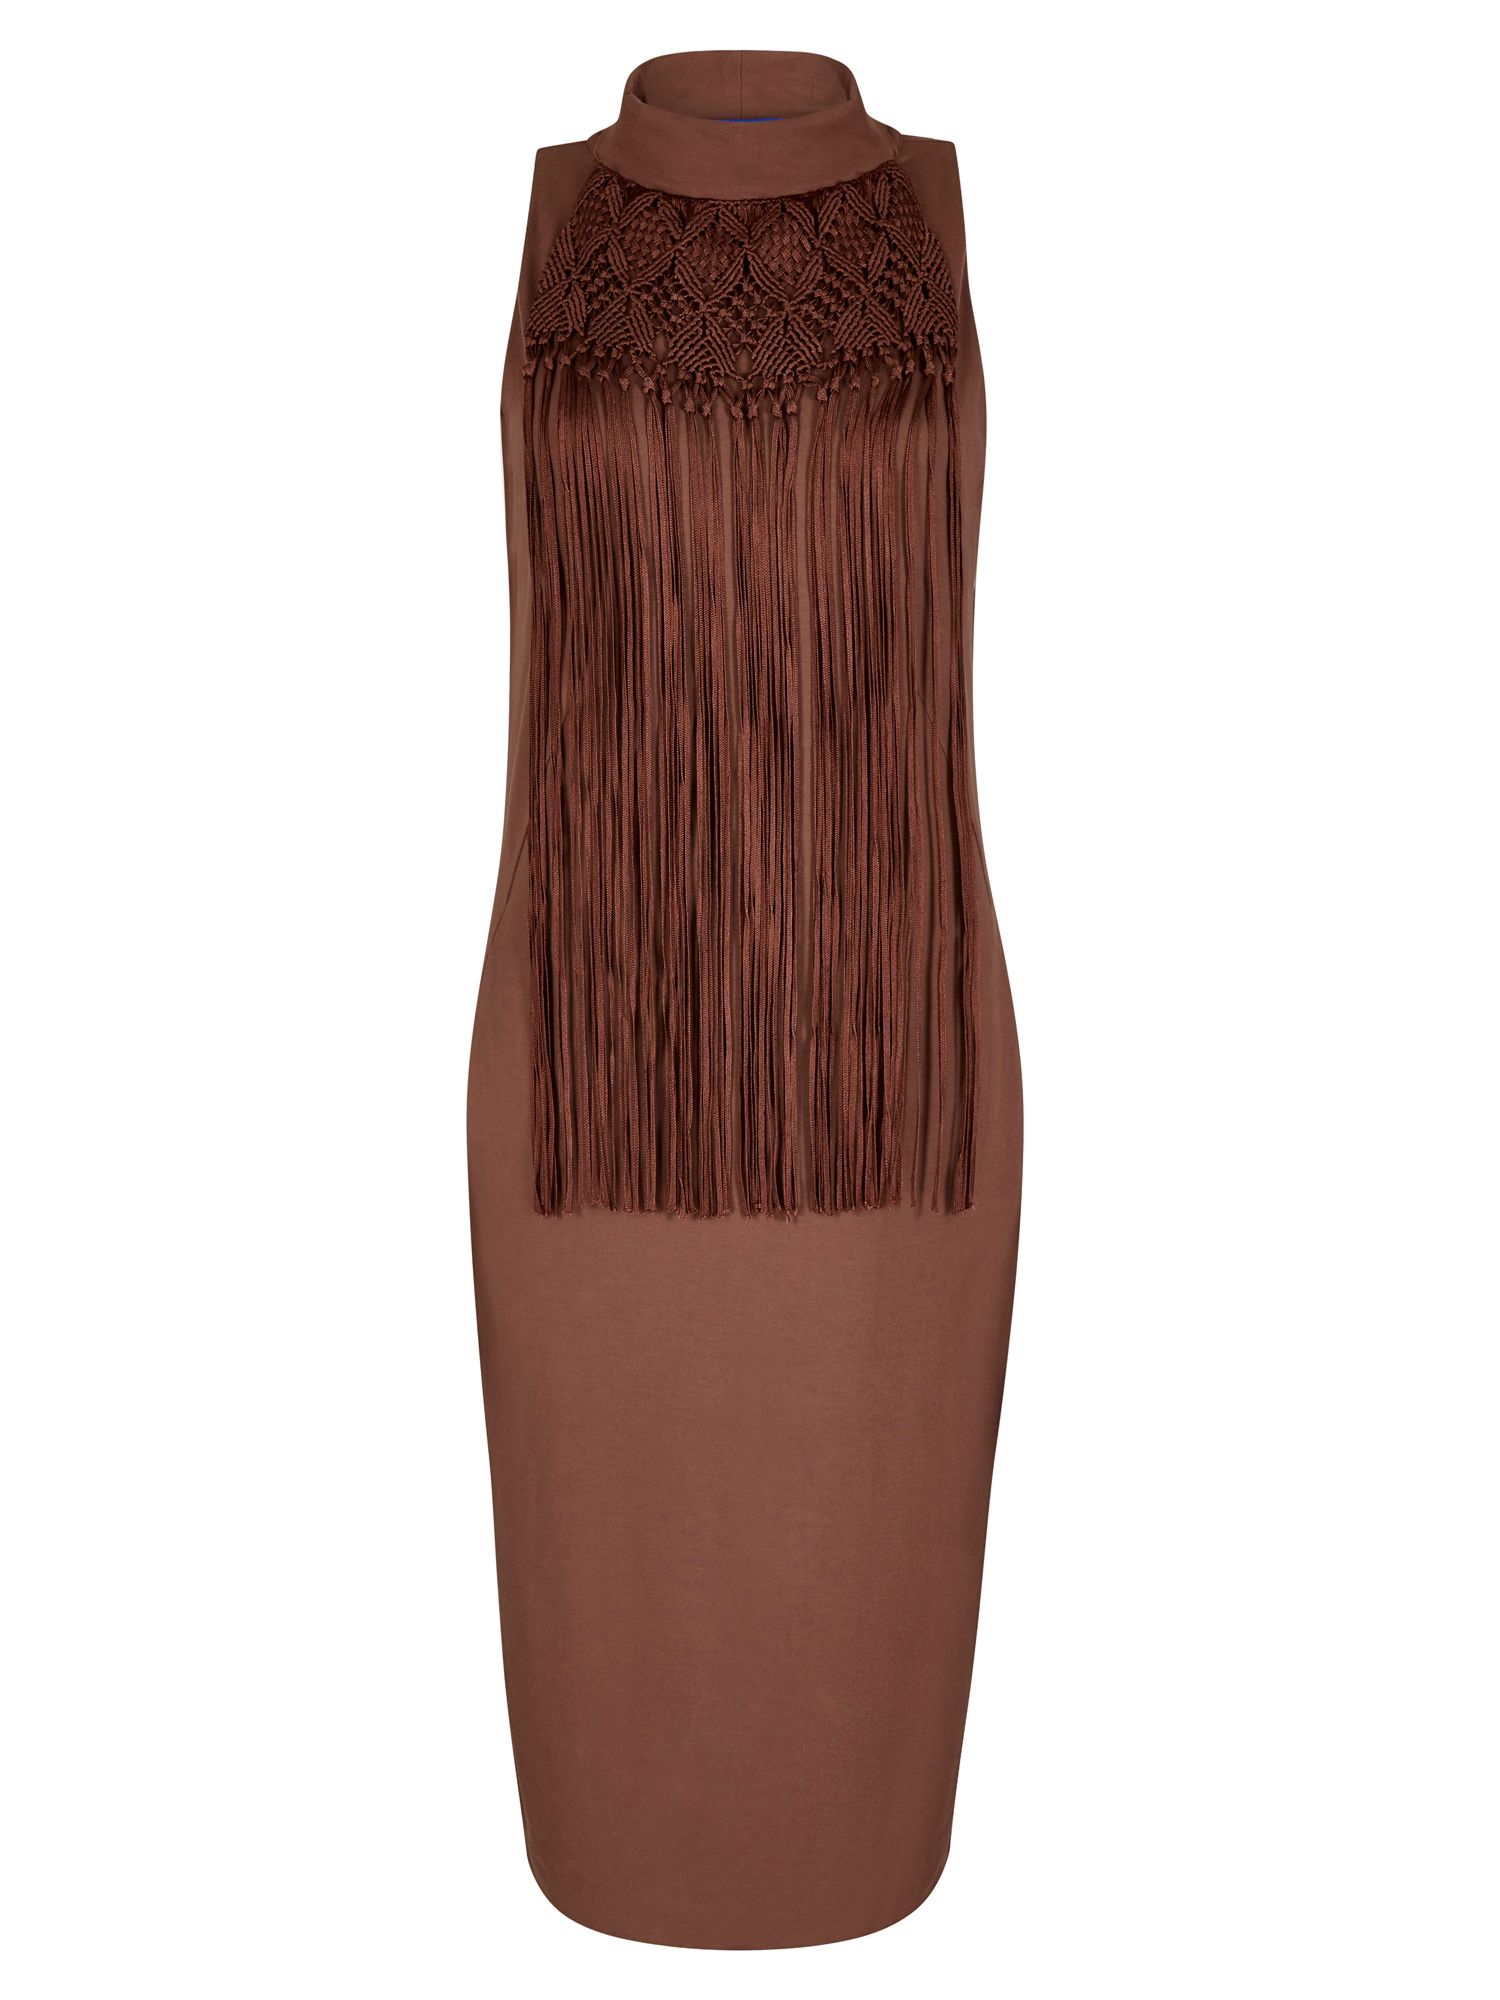 Winser London Macrame Dress, Brown